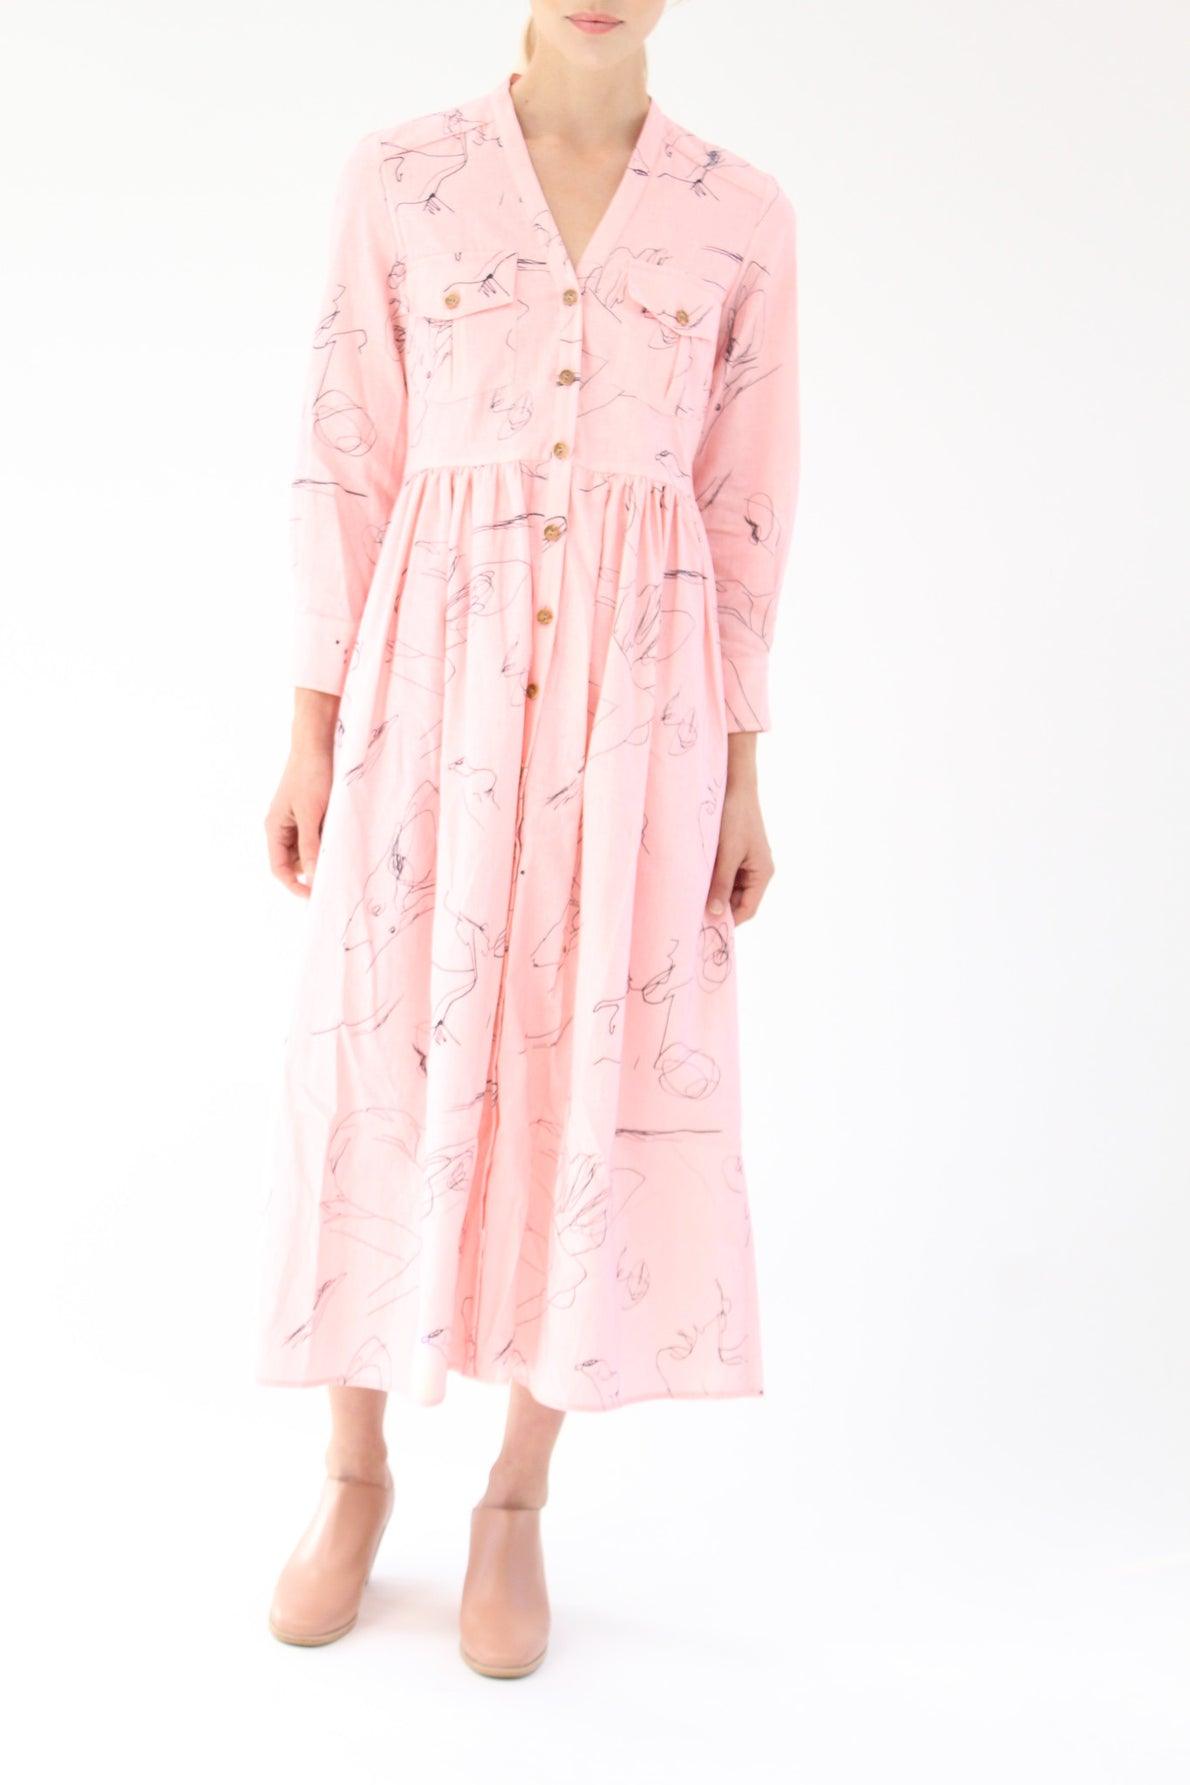 Heinui Nico Dress Pink Scribbles Print At Beklina